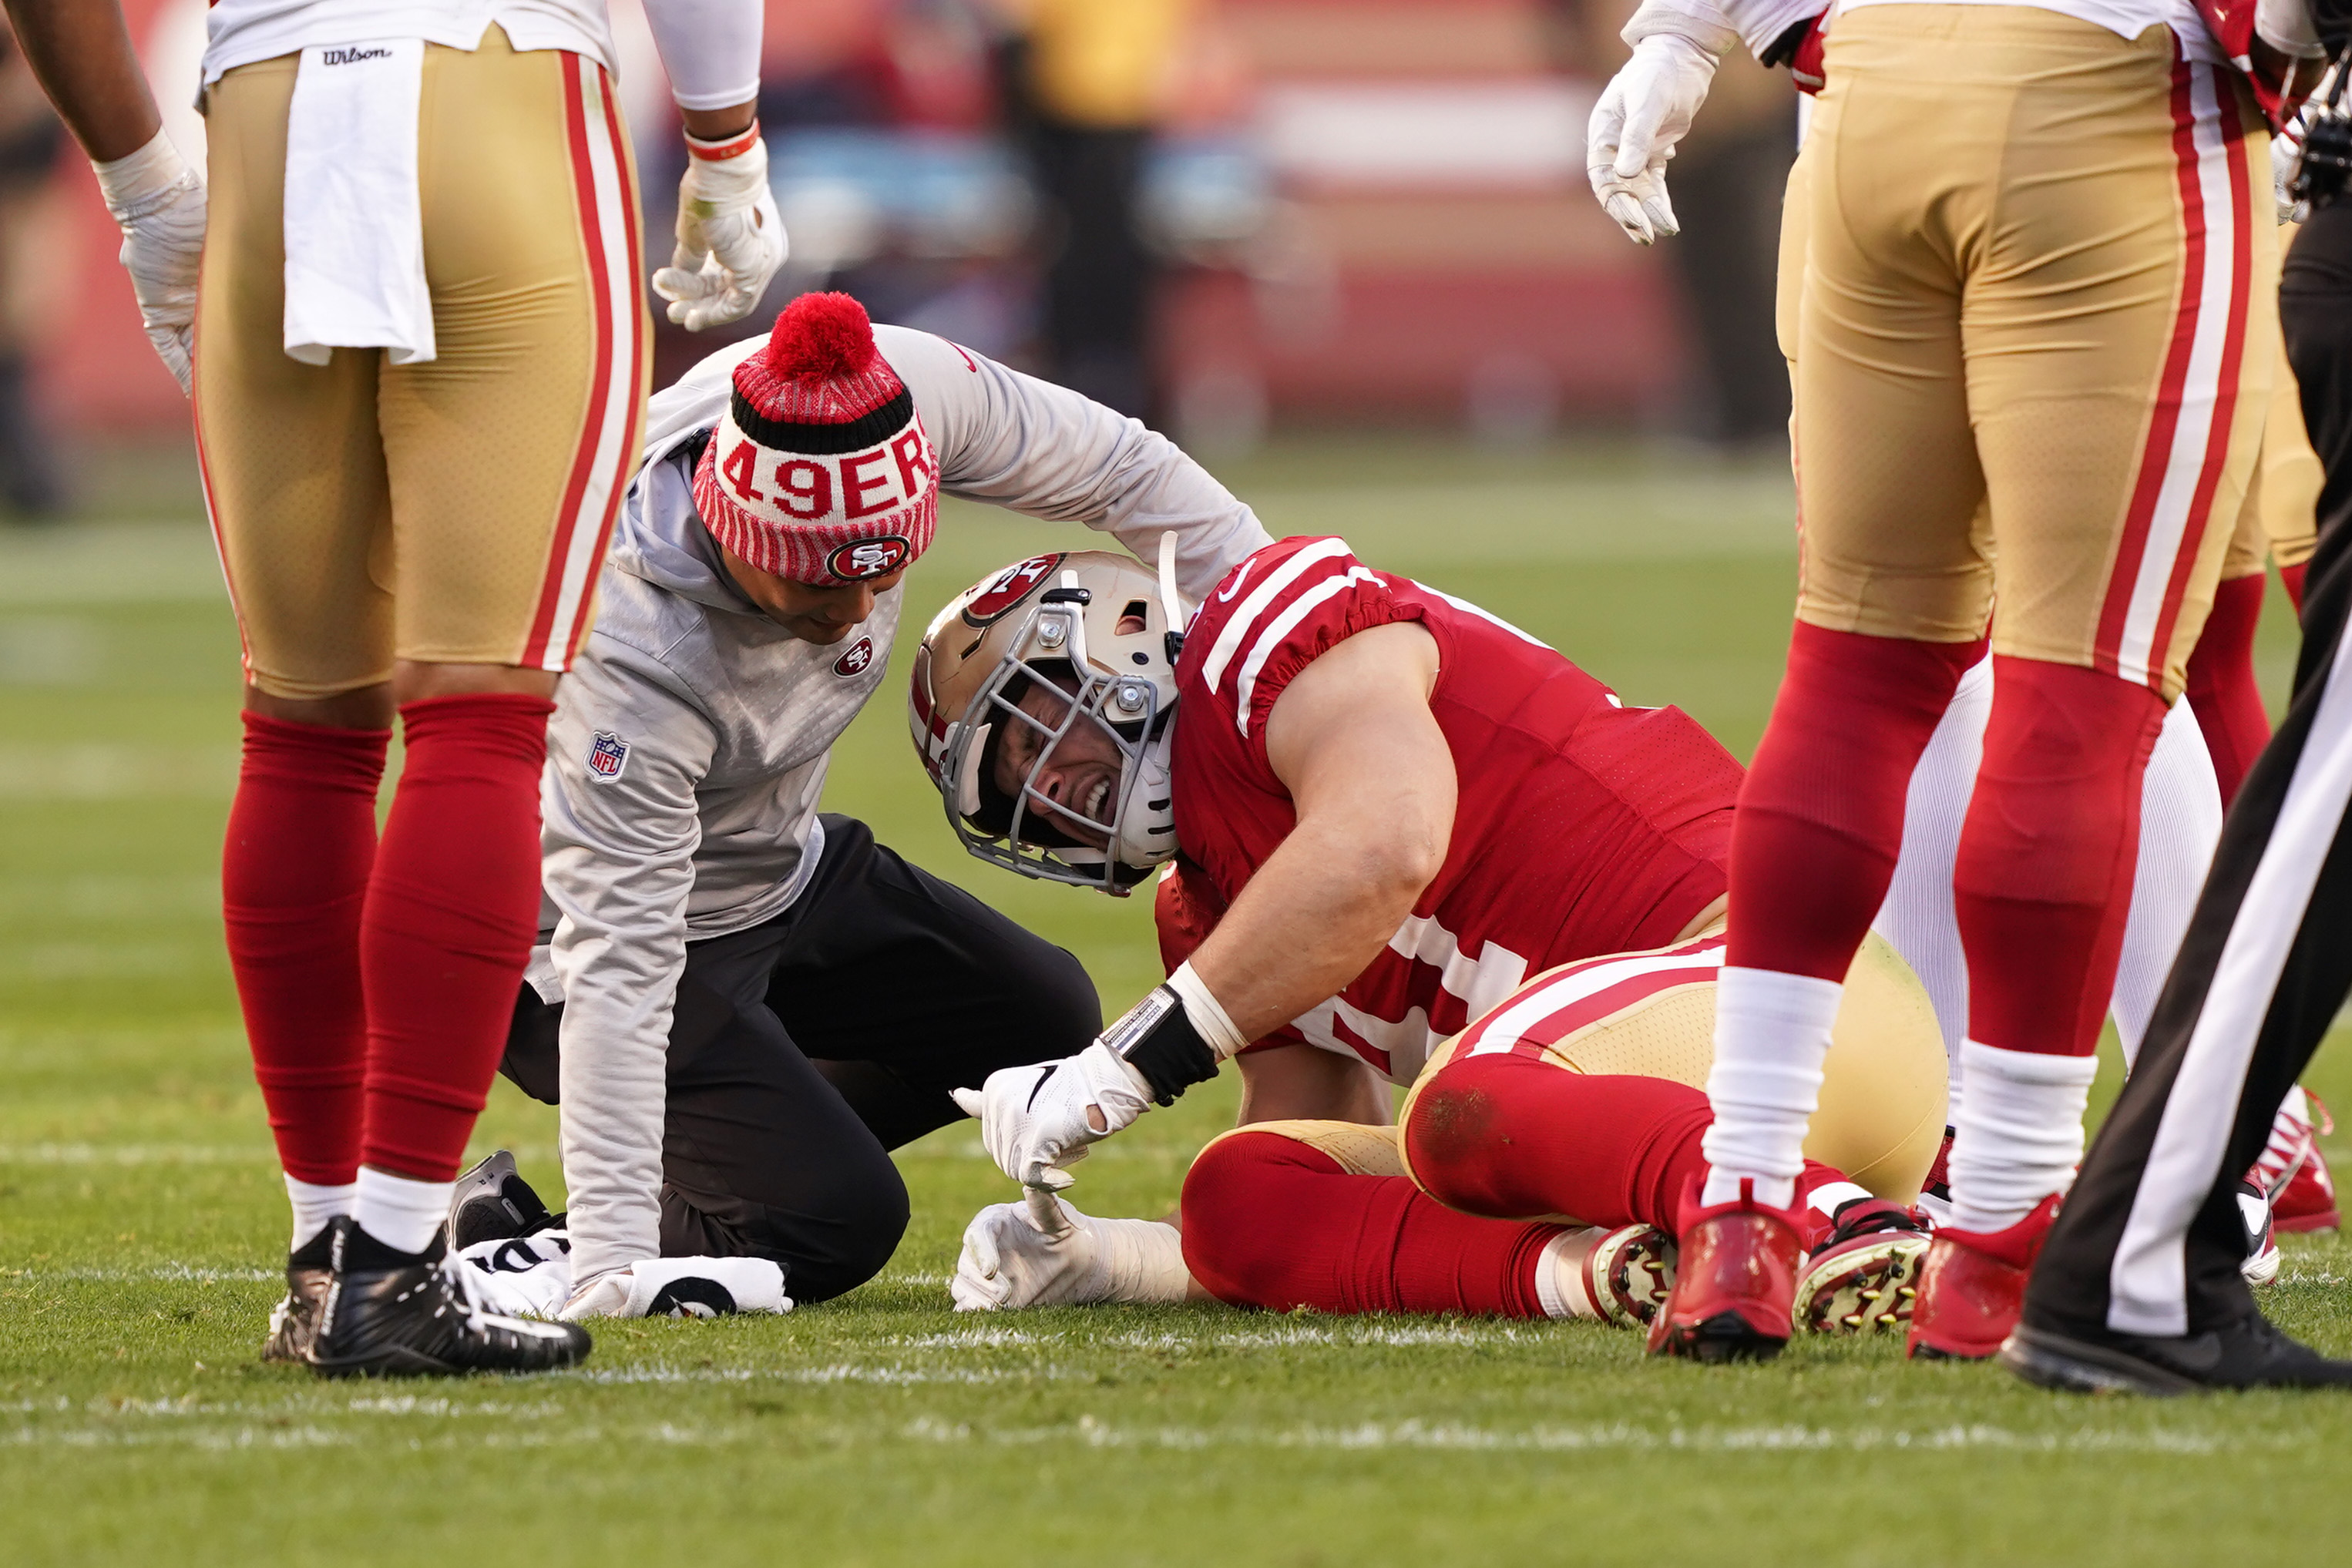 Nick Bosa of the San Francisco 49ers after an injury